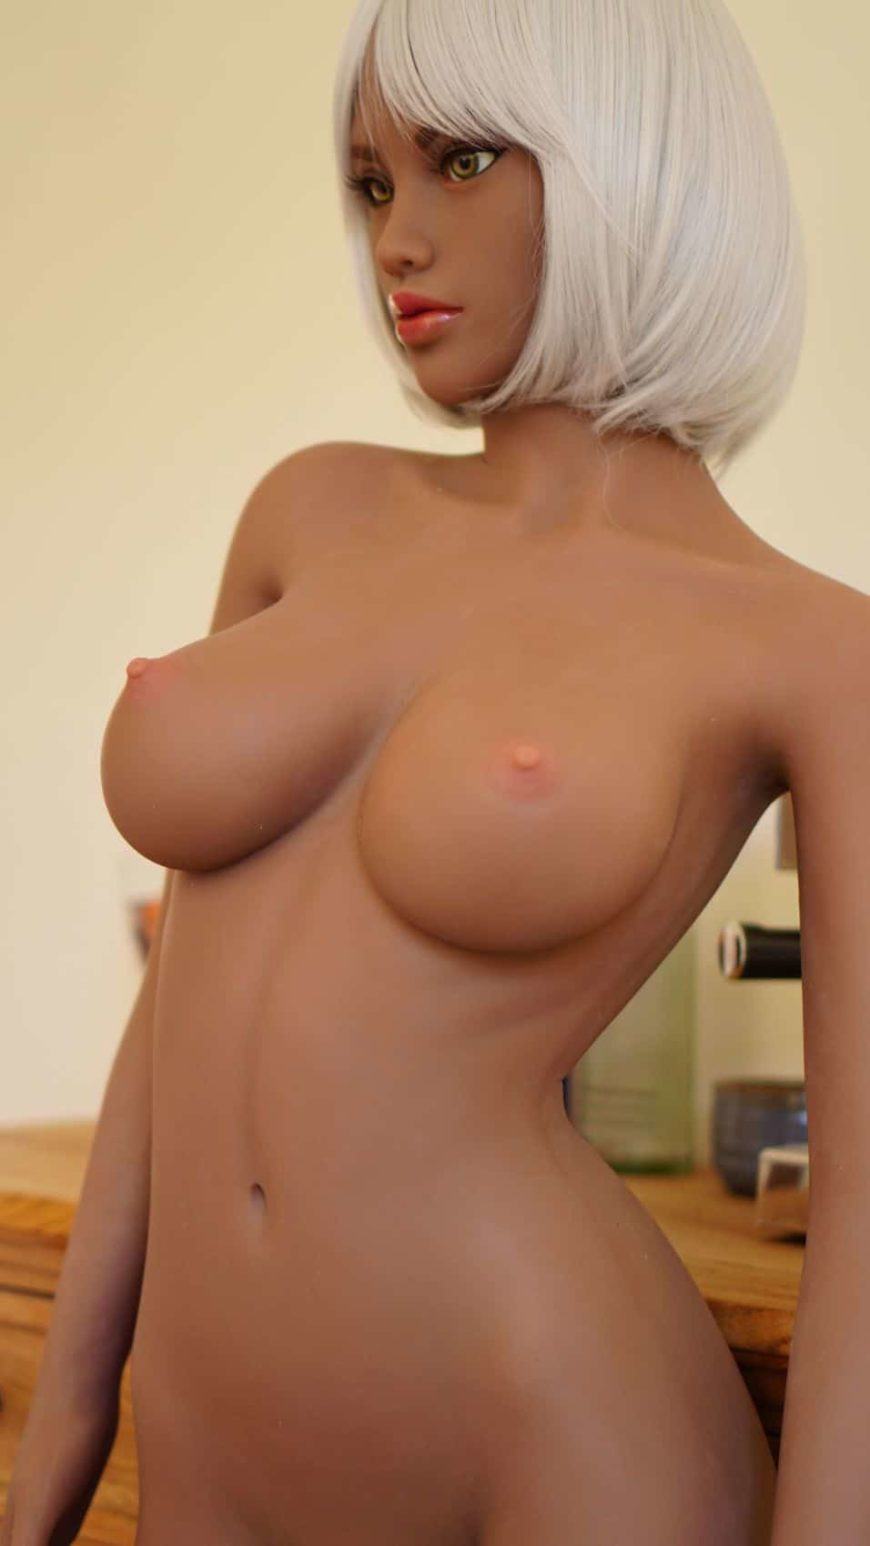 Gilly-Sex-Doll-from-Dirty-Knights-Sex-Dolls-posing-naked-1 (19)